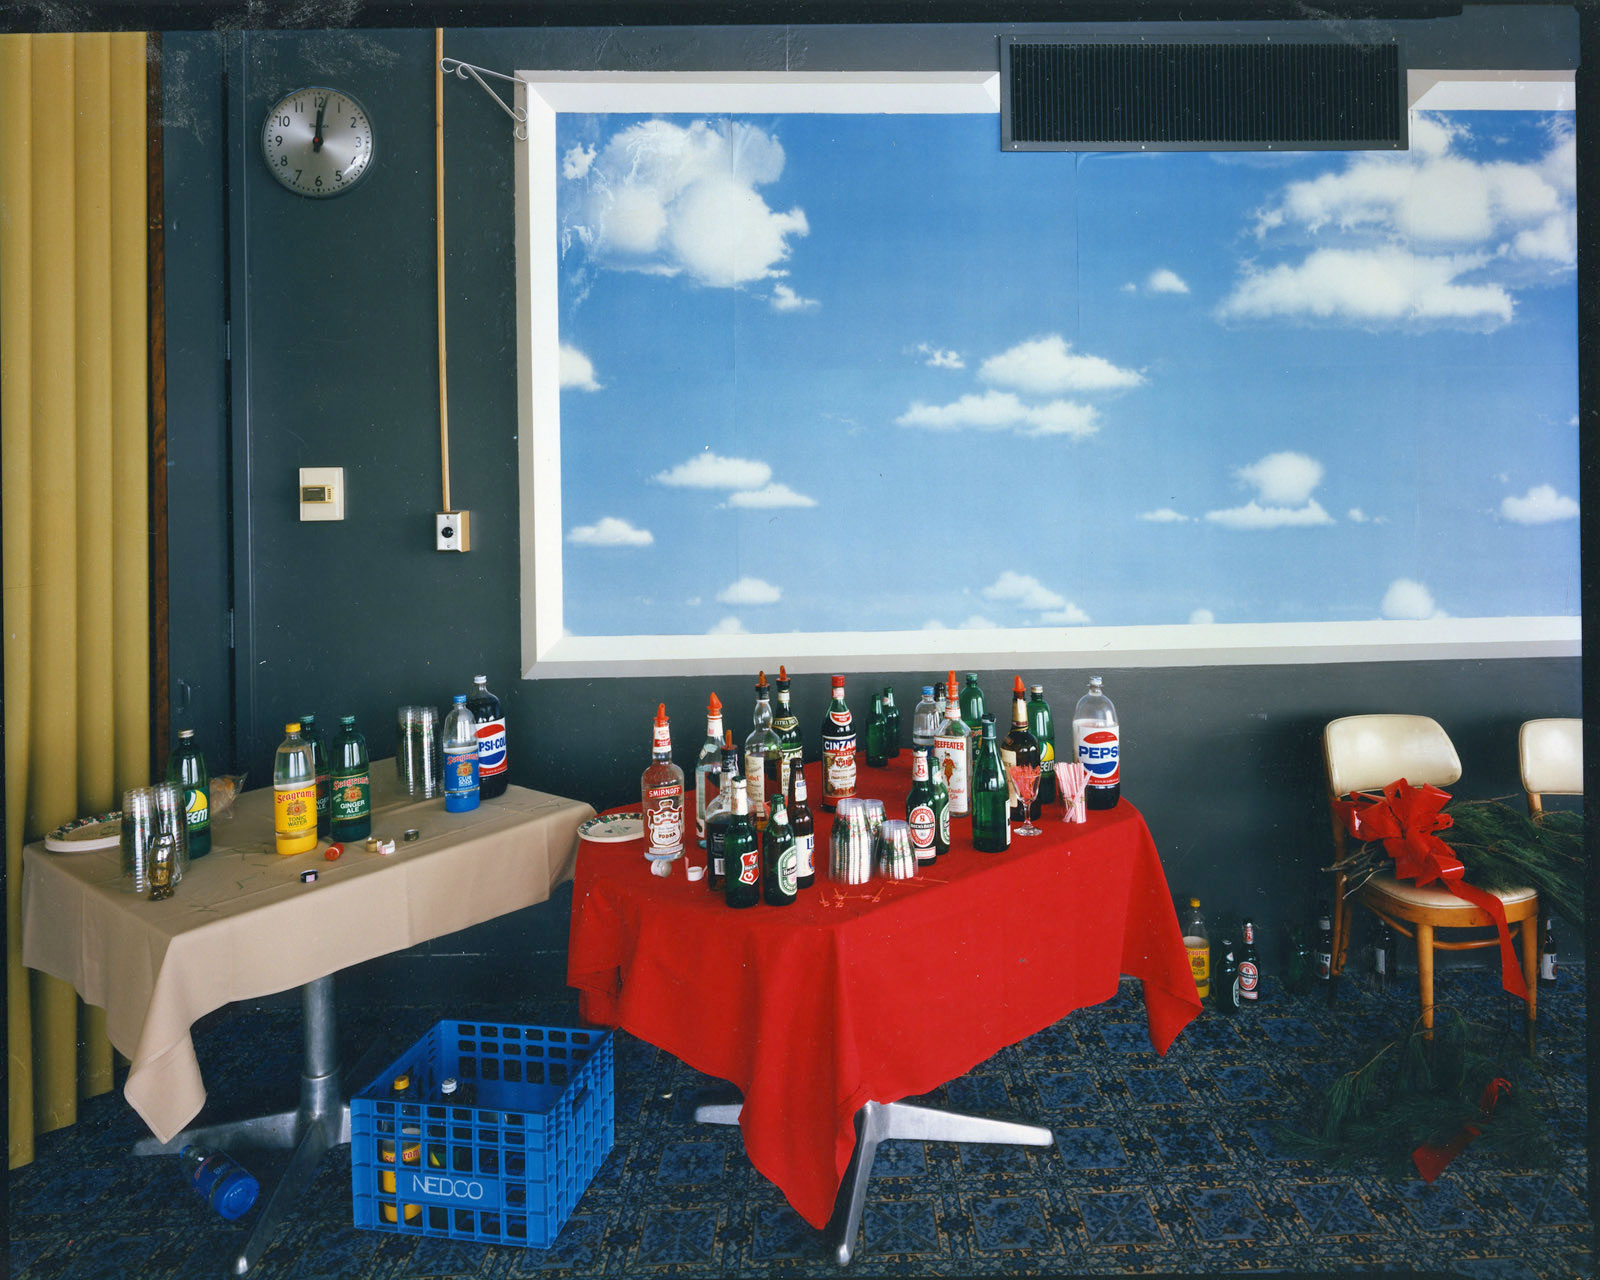 Framed clouds with blue sky, over 2 tables with soda/liquor bottles (red and tan tablecloths)